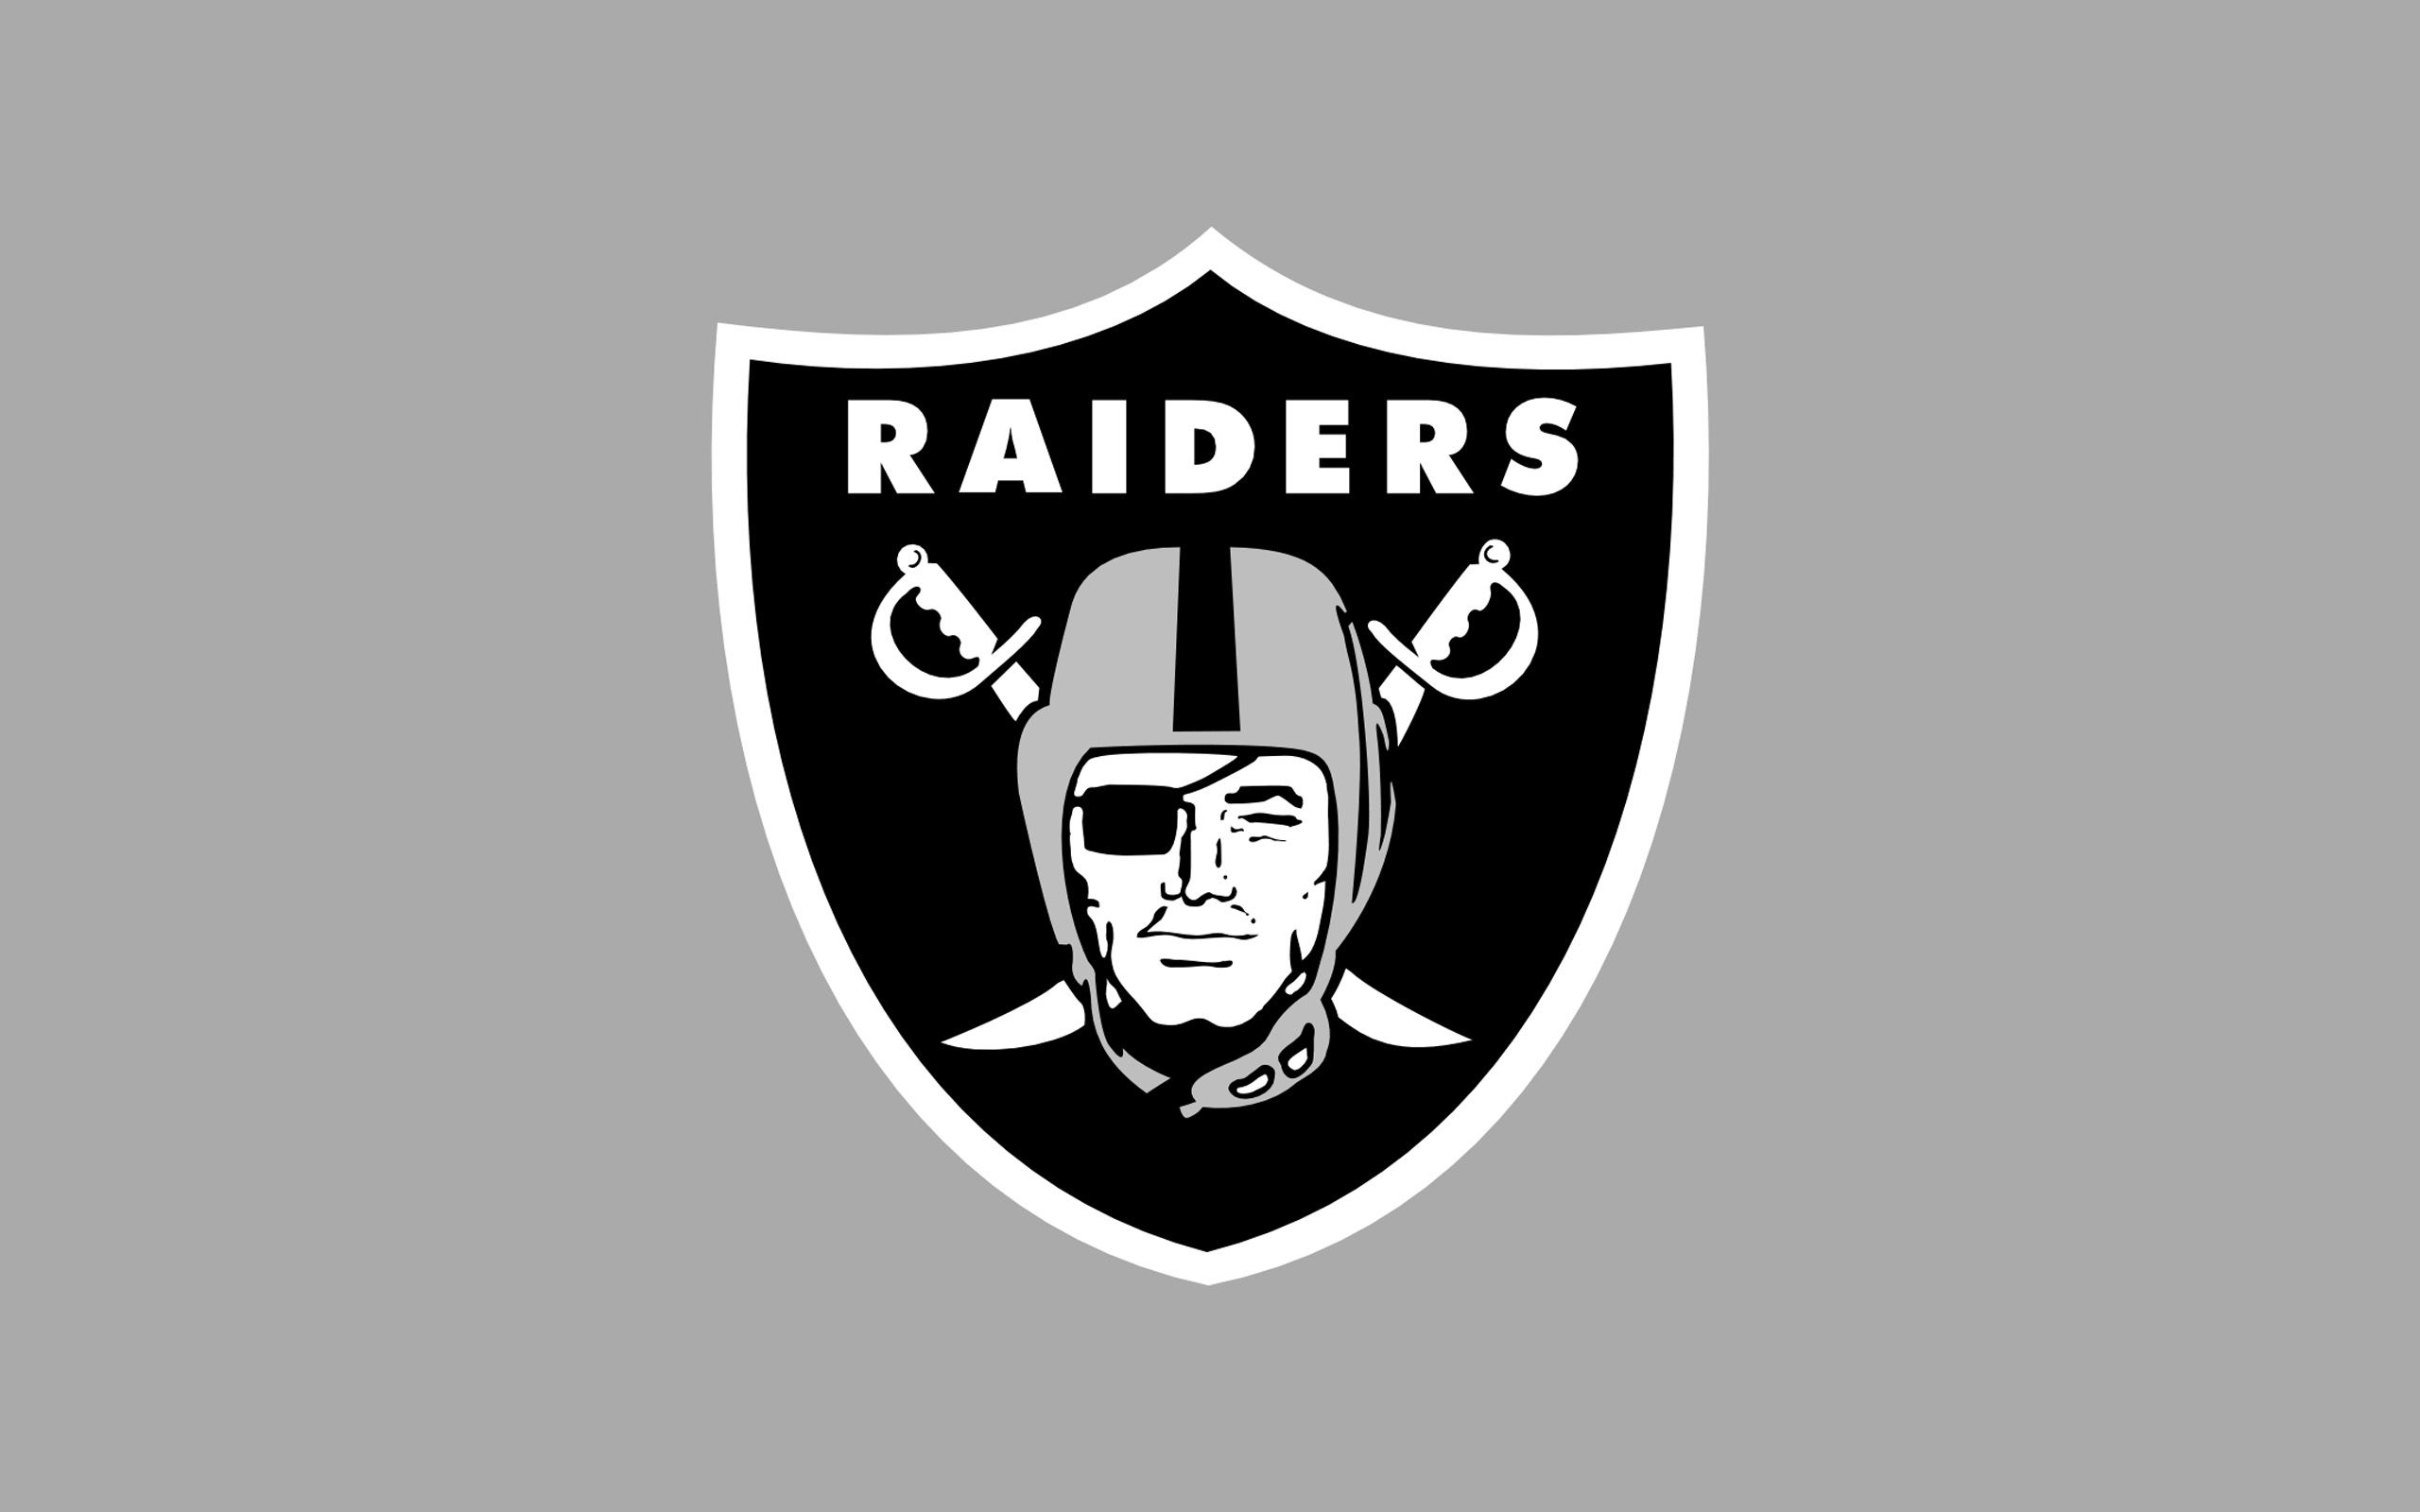 best ideas about raiders wallpaper on pinterest image raider | the